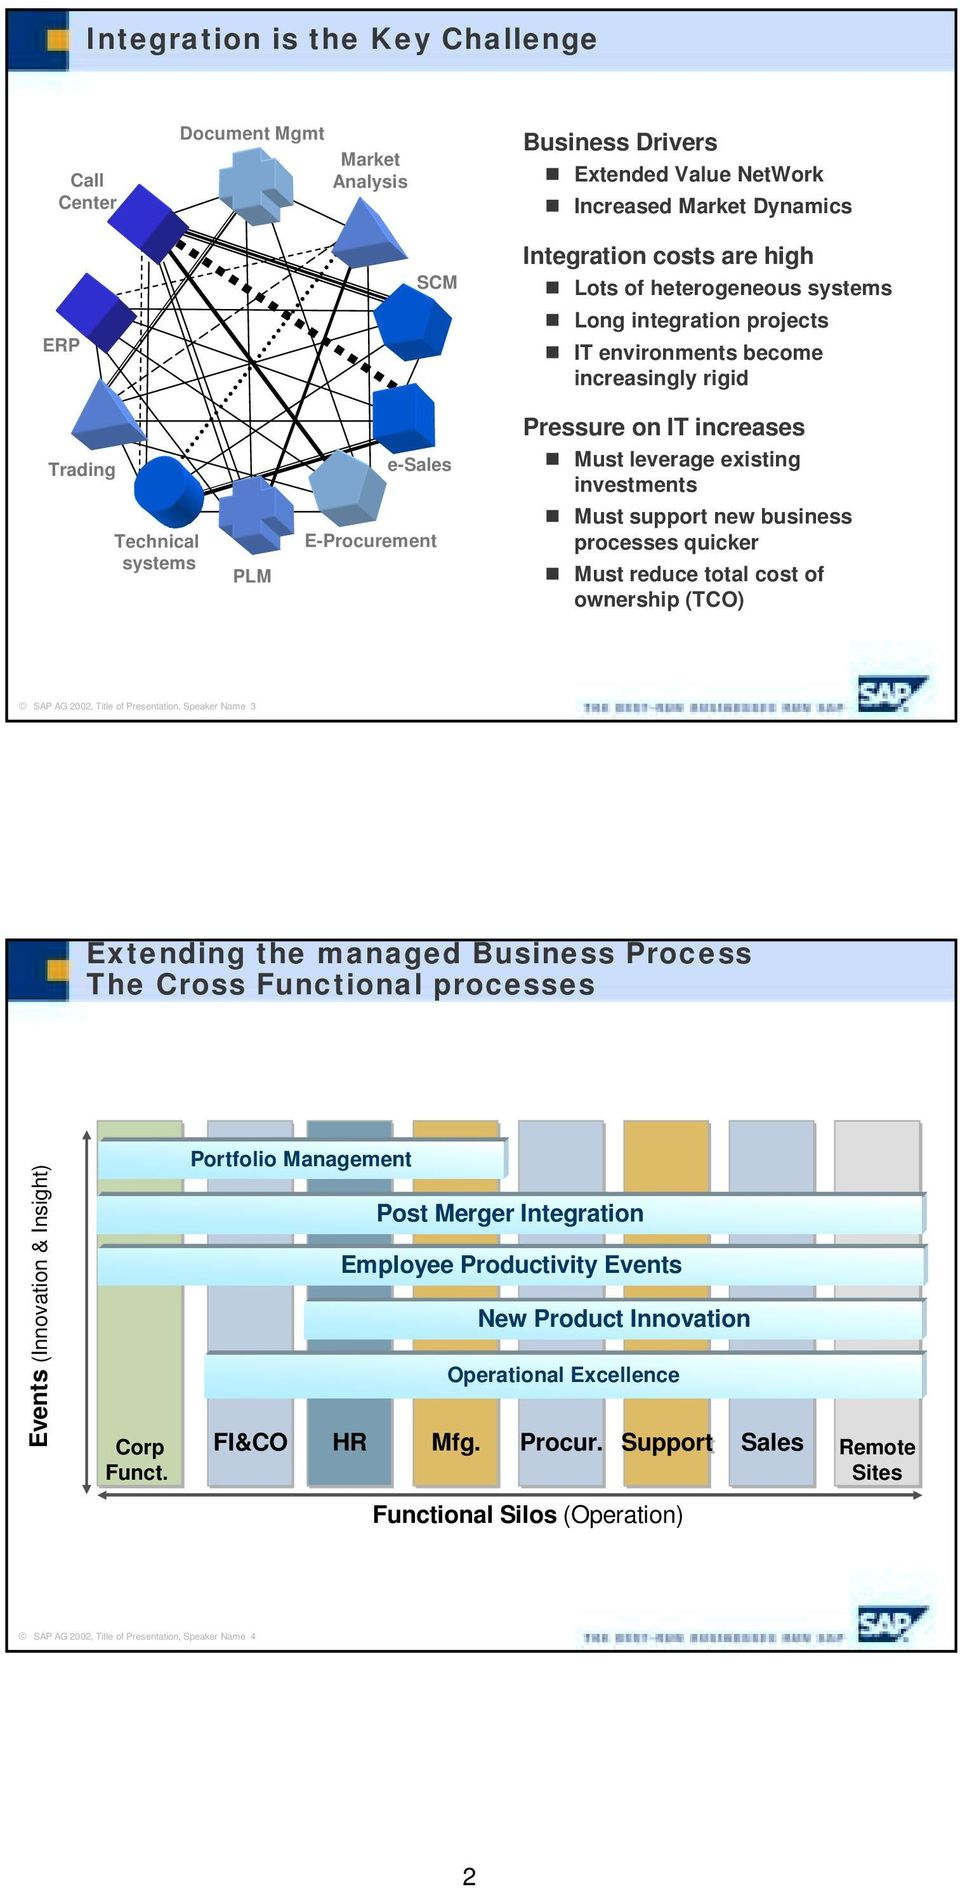 business processes quicker # Must reduce total cost of ownership (TCO) SAP AG 2002, Title of Presentation, Speaker Name 3 Extending the managed Business Process The Cross Functional processes Events